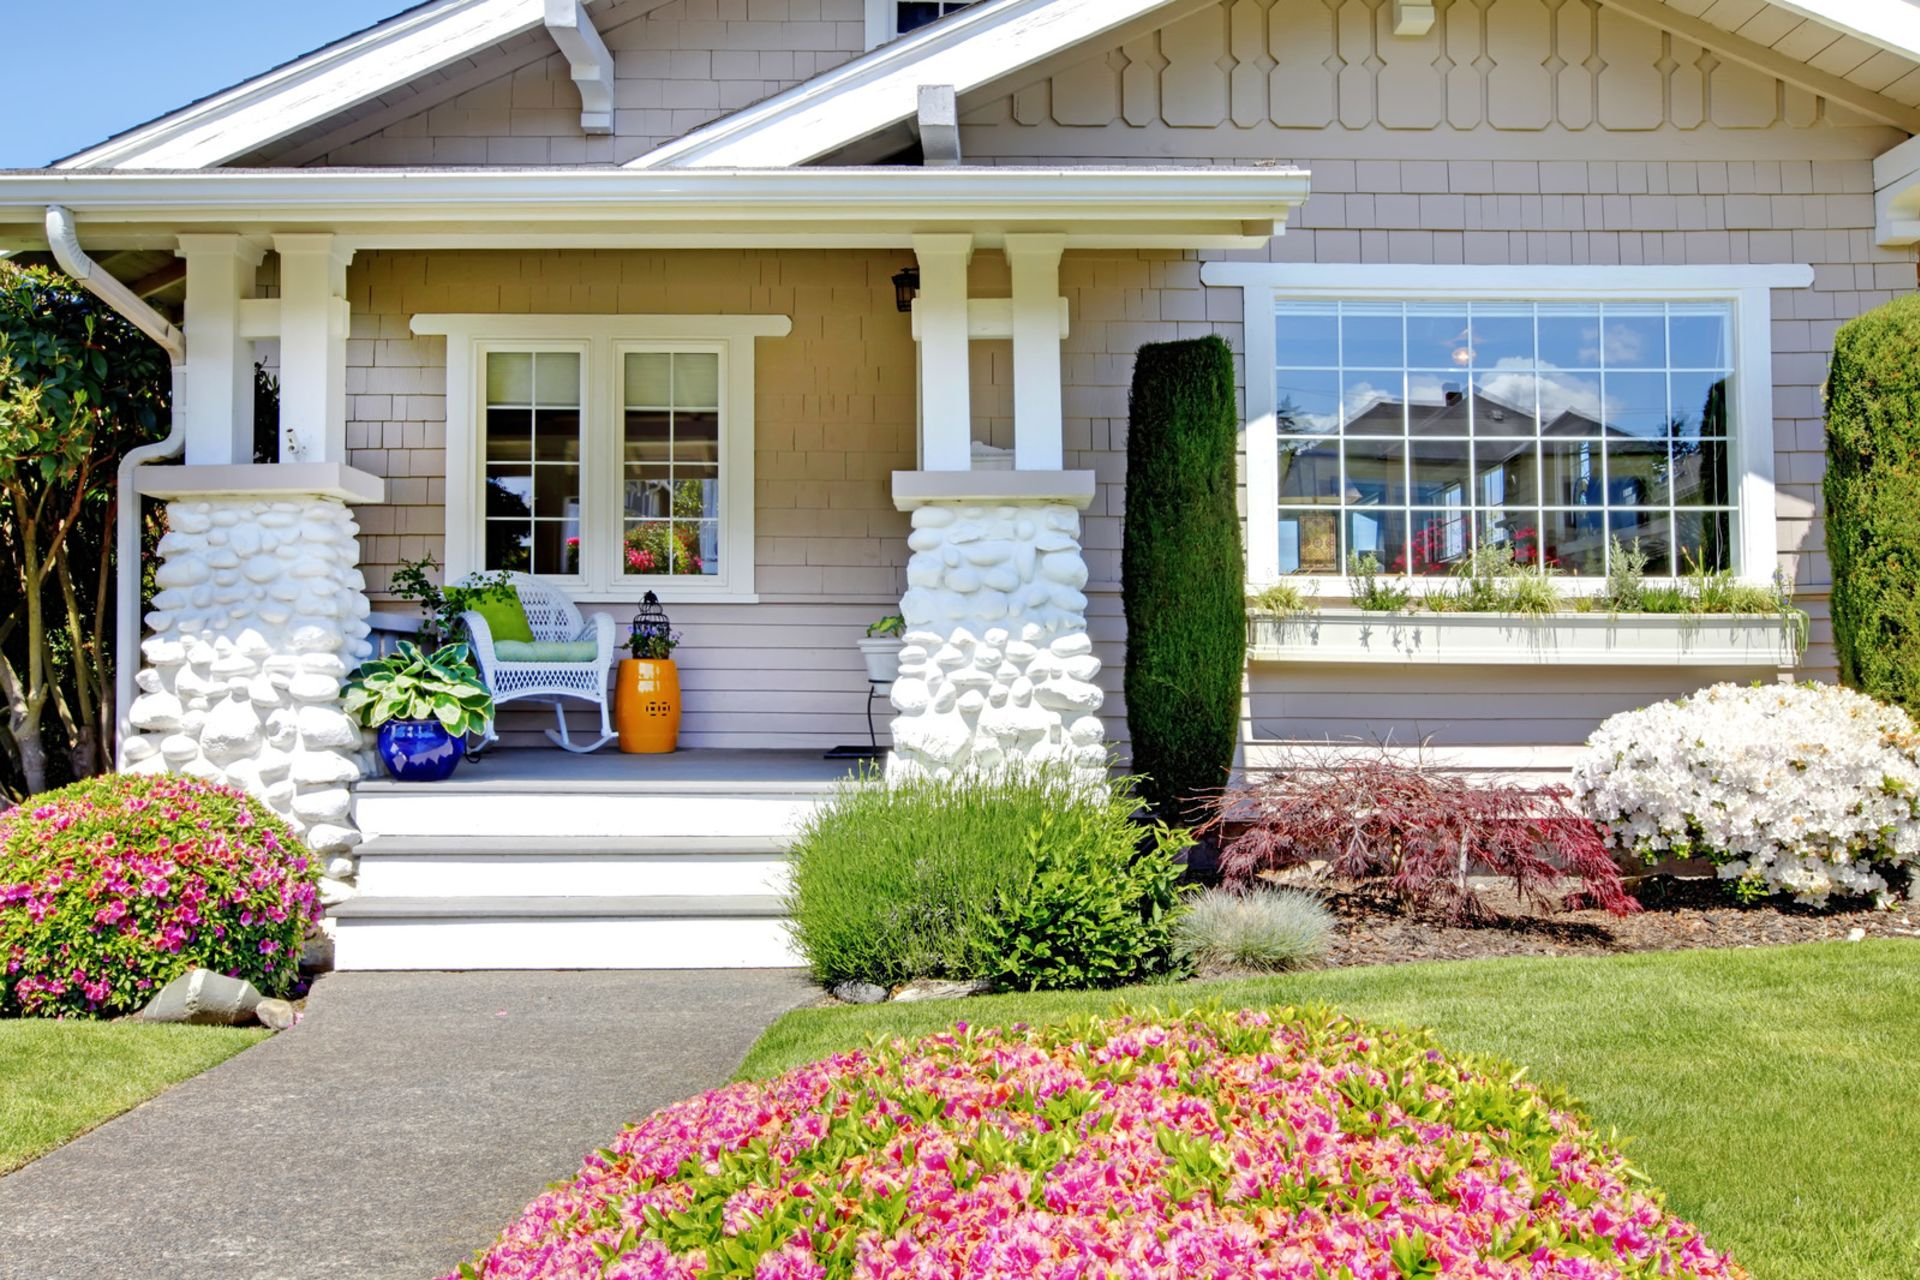 Ways to Make Your Home Sell Faster